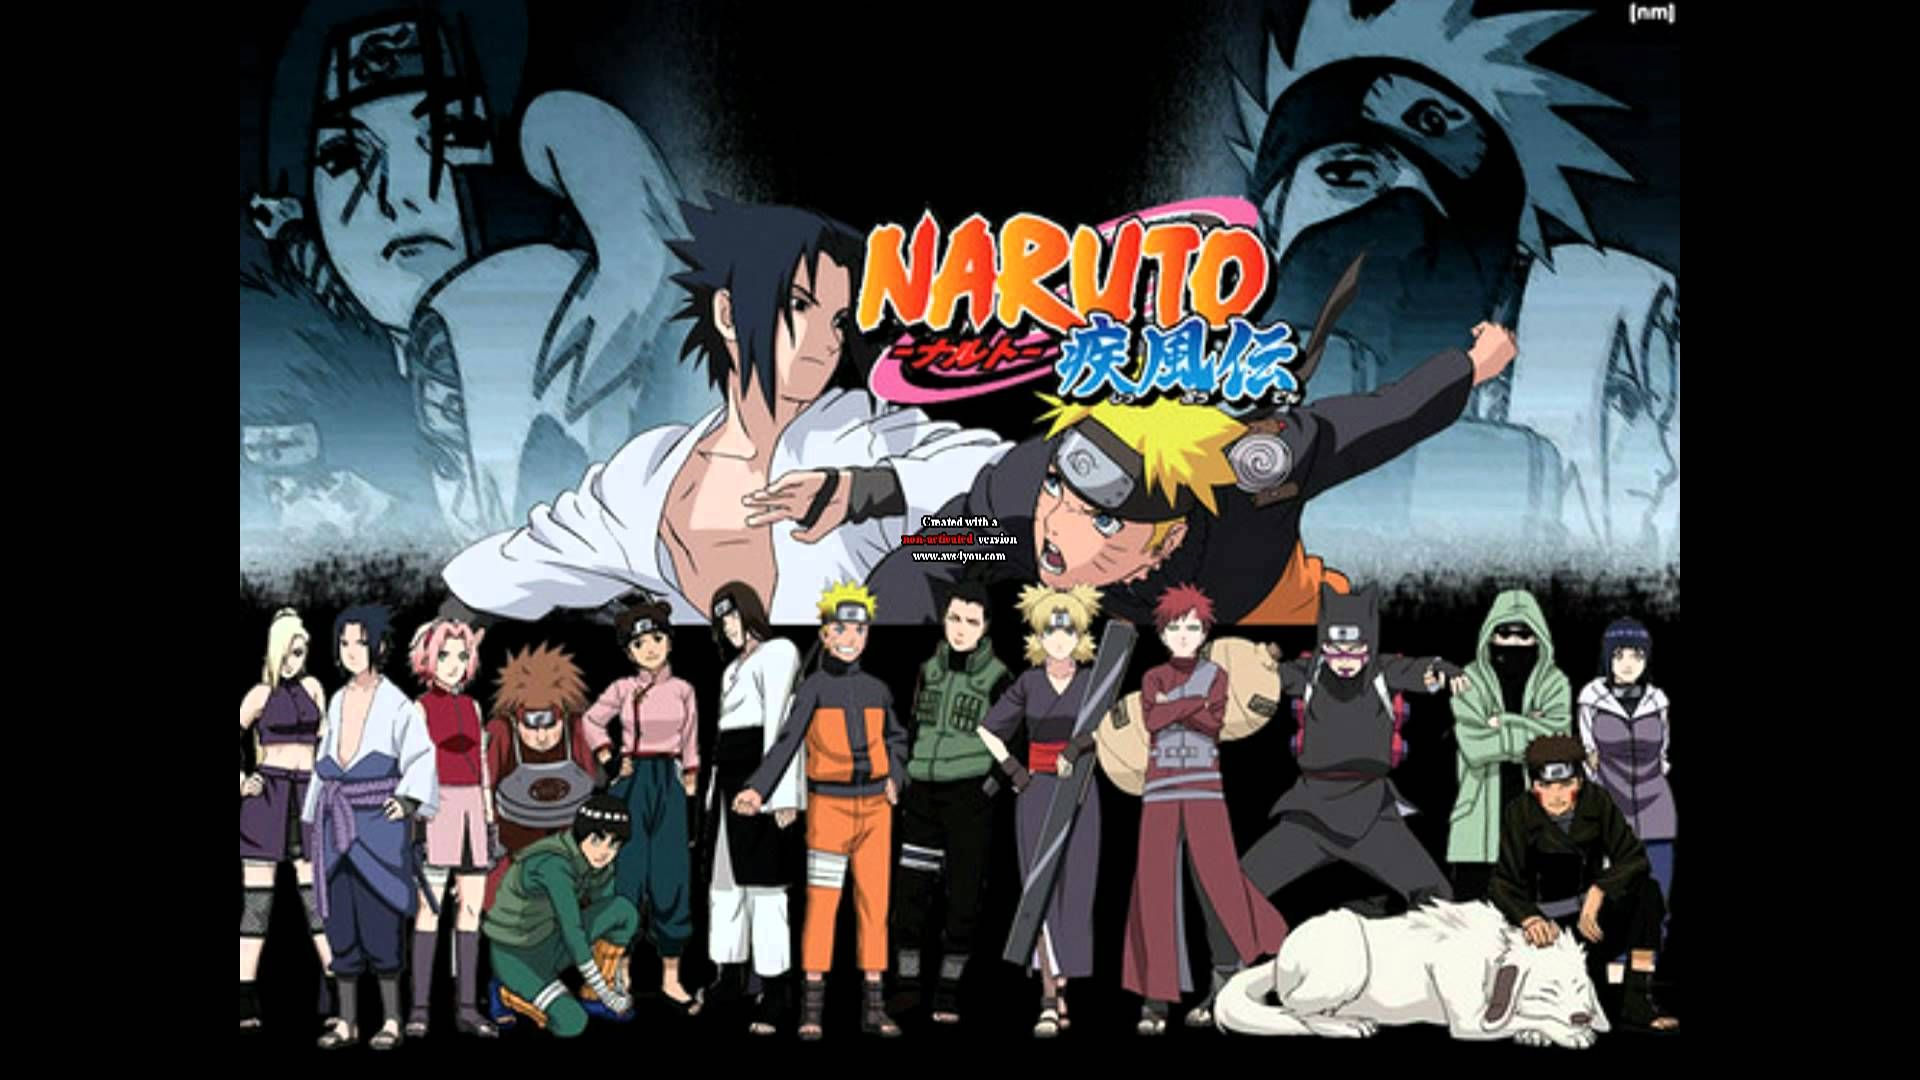 Most Inspiring Wallpaper Naruto Theme - 48cd929ecf0fbd4e5f41ee9bbef0eee6  Trends.jpg